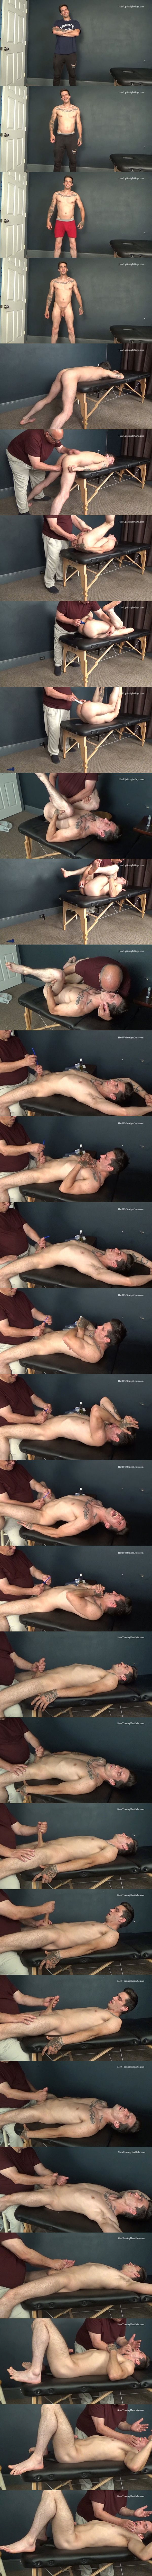 Hardupstraightguys - straight guy Drew gets fingered, dildo-fucked, made to take sounding into his dick and jerked off before he eats his own cum and swallow it 02